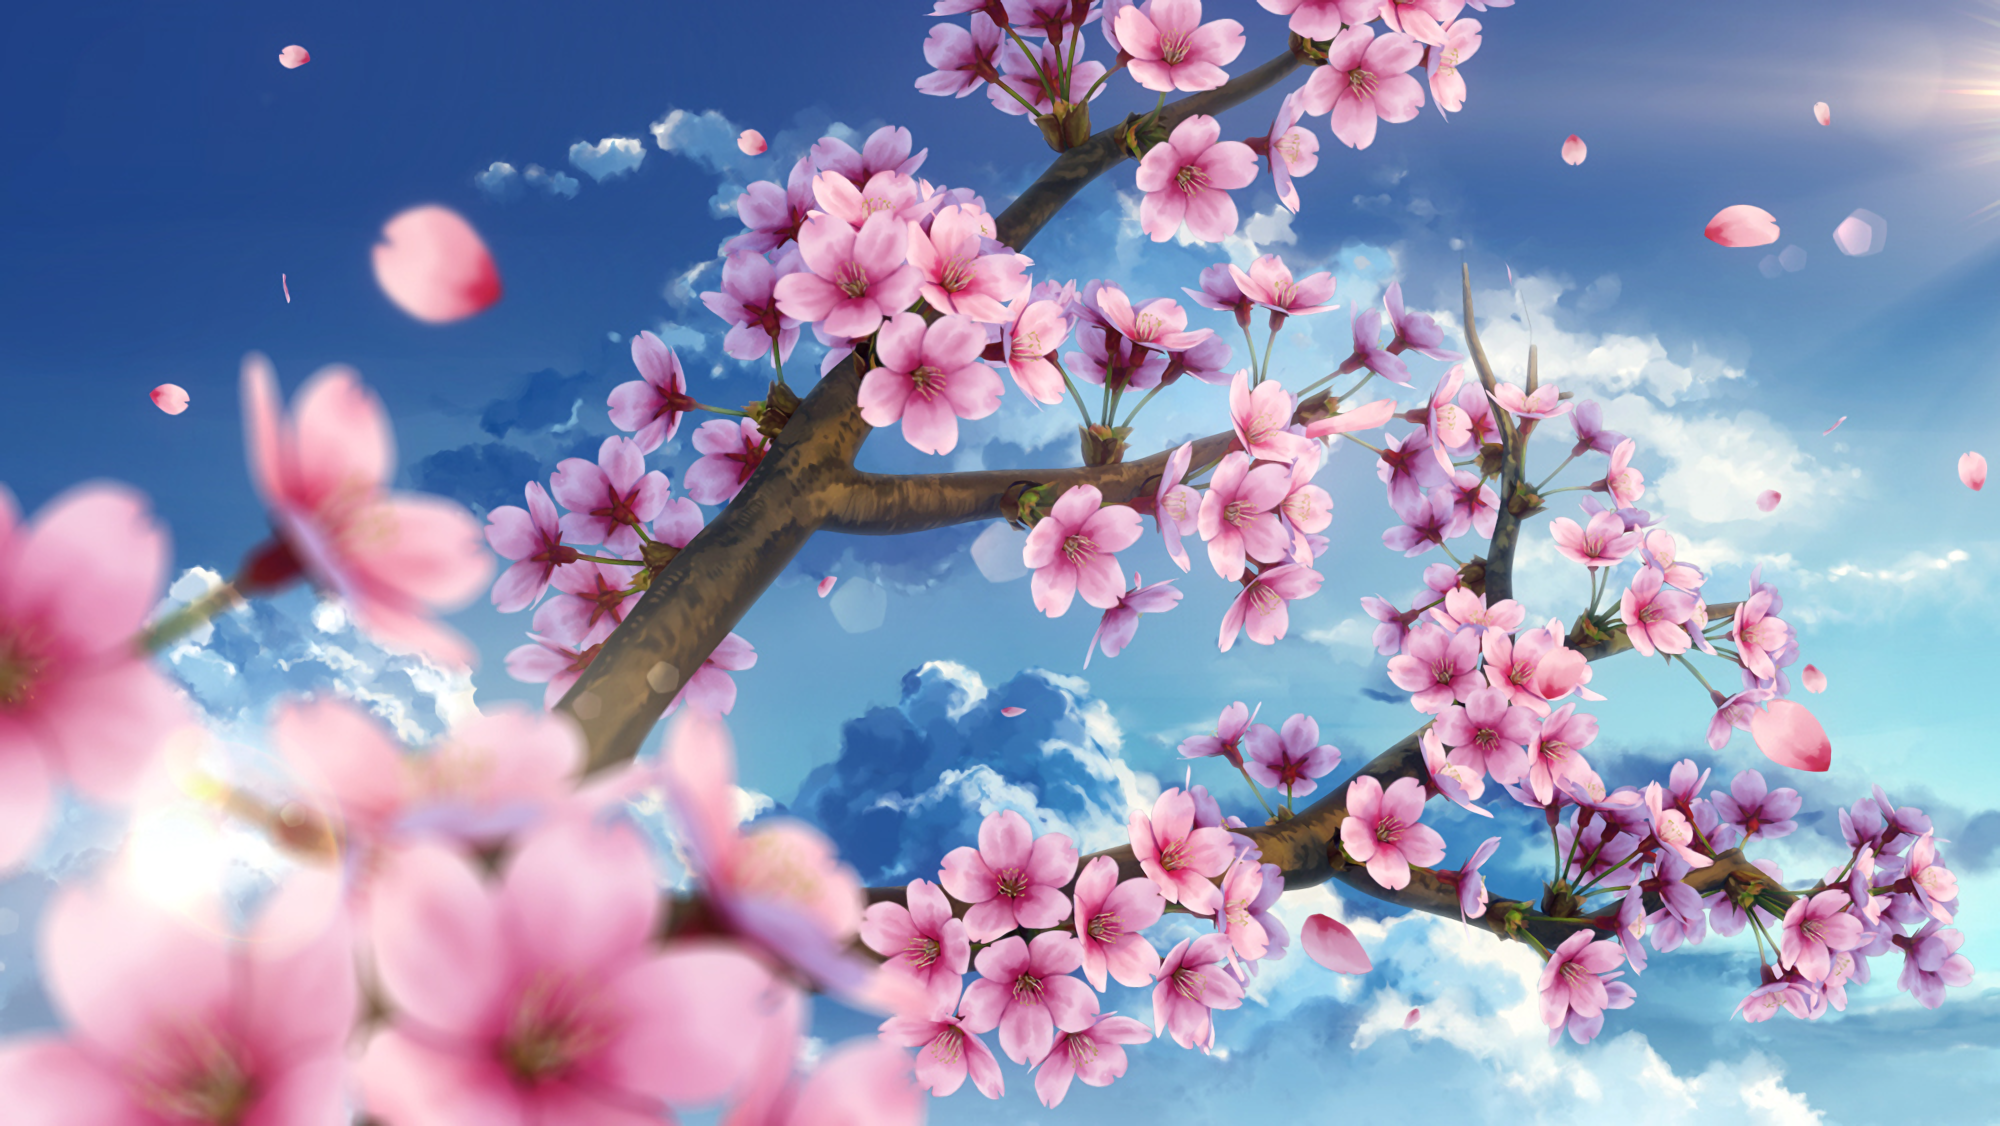 Original hd wallpaper background image 2000x1126 id - Anime cherry blossom wallpaper ...